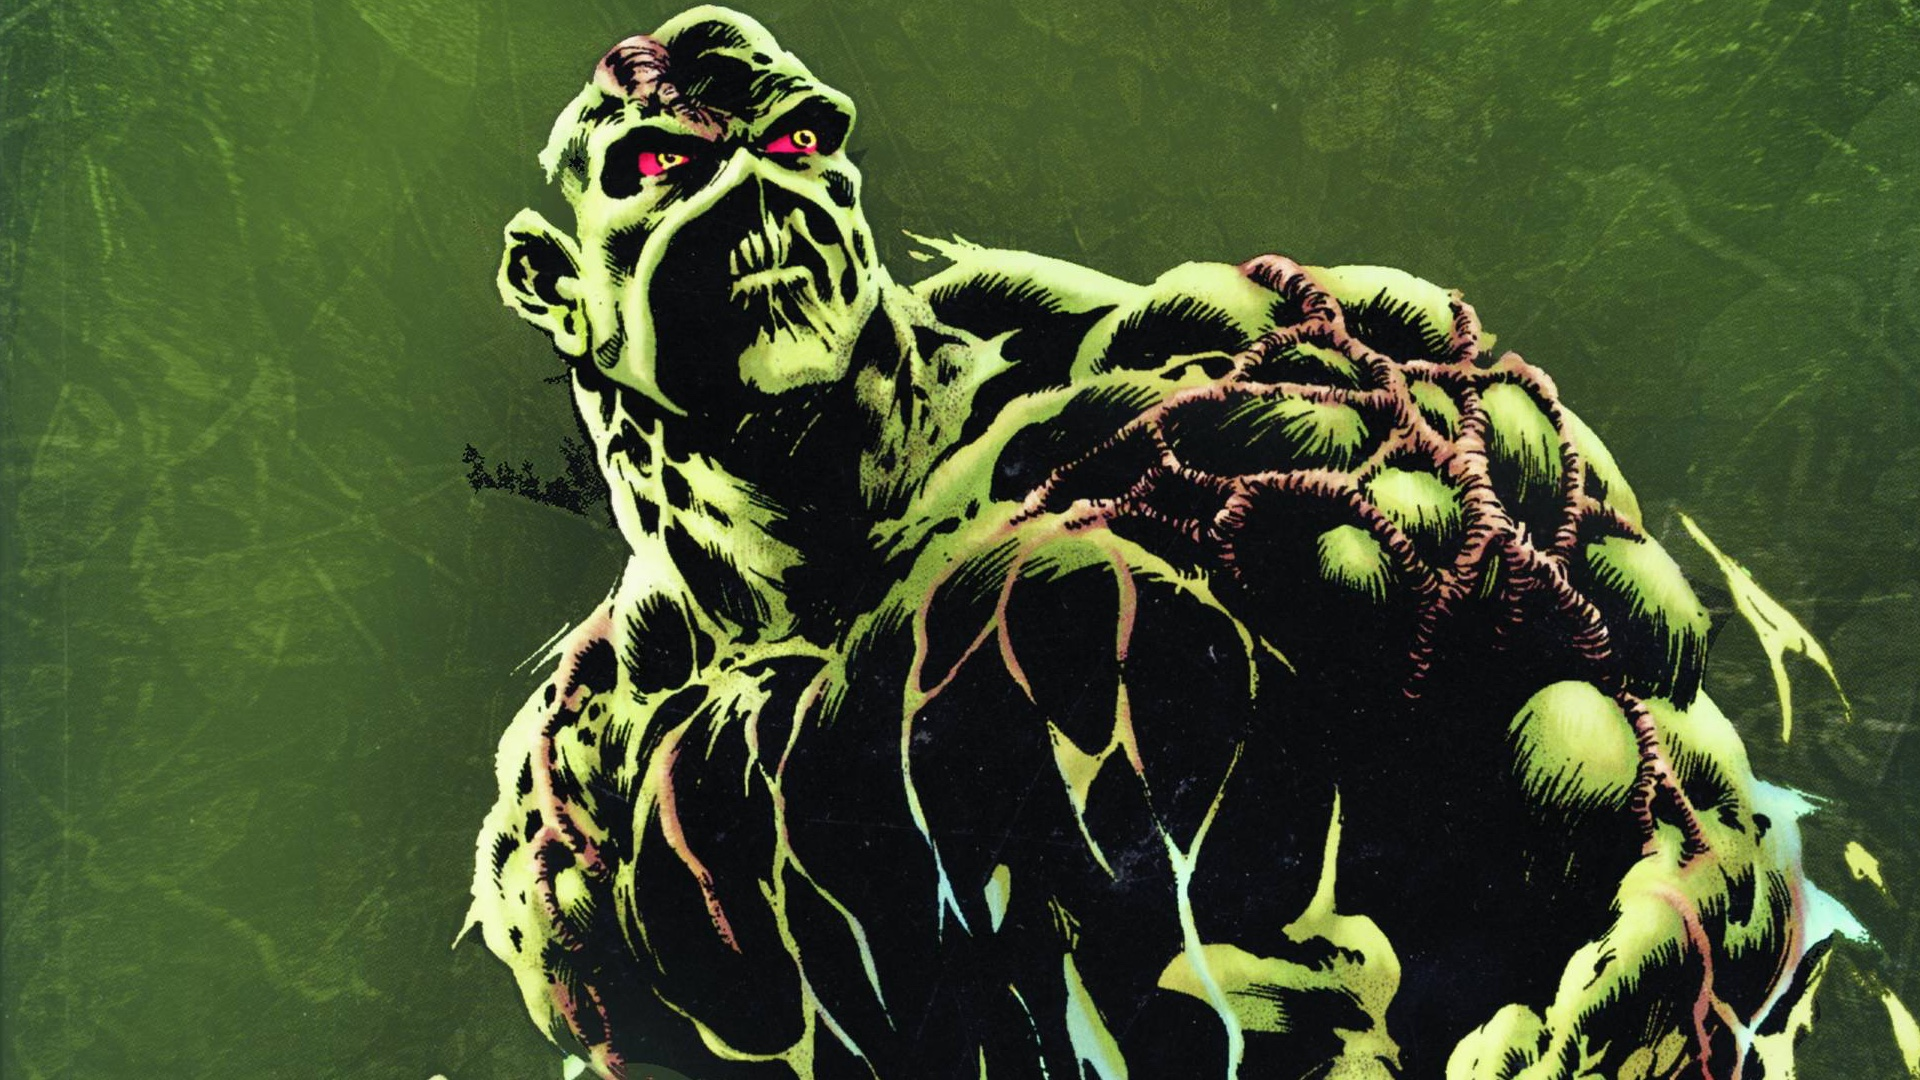 James Wan S Swamp Thing Series Will Not Be Part Of The Titans And Doom Patrol Universe Geektyrant